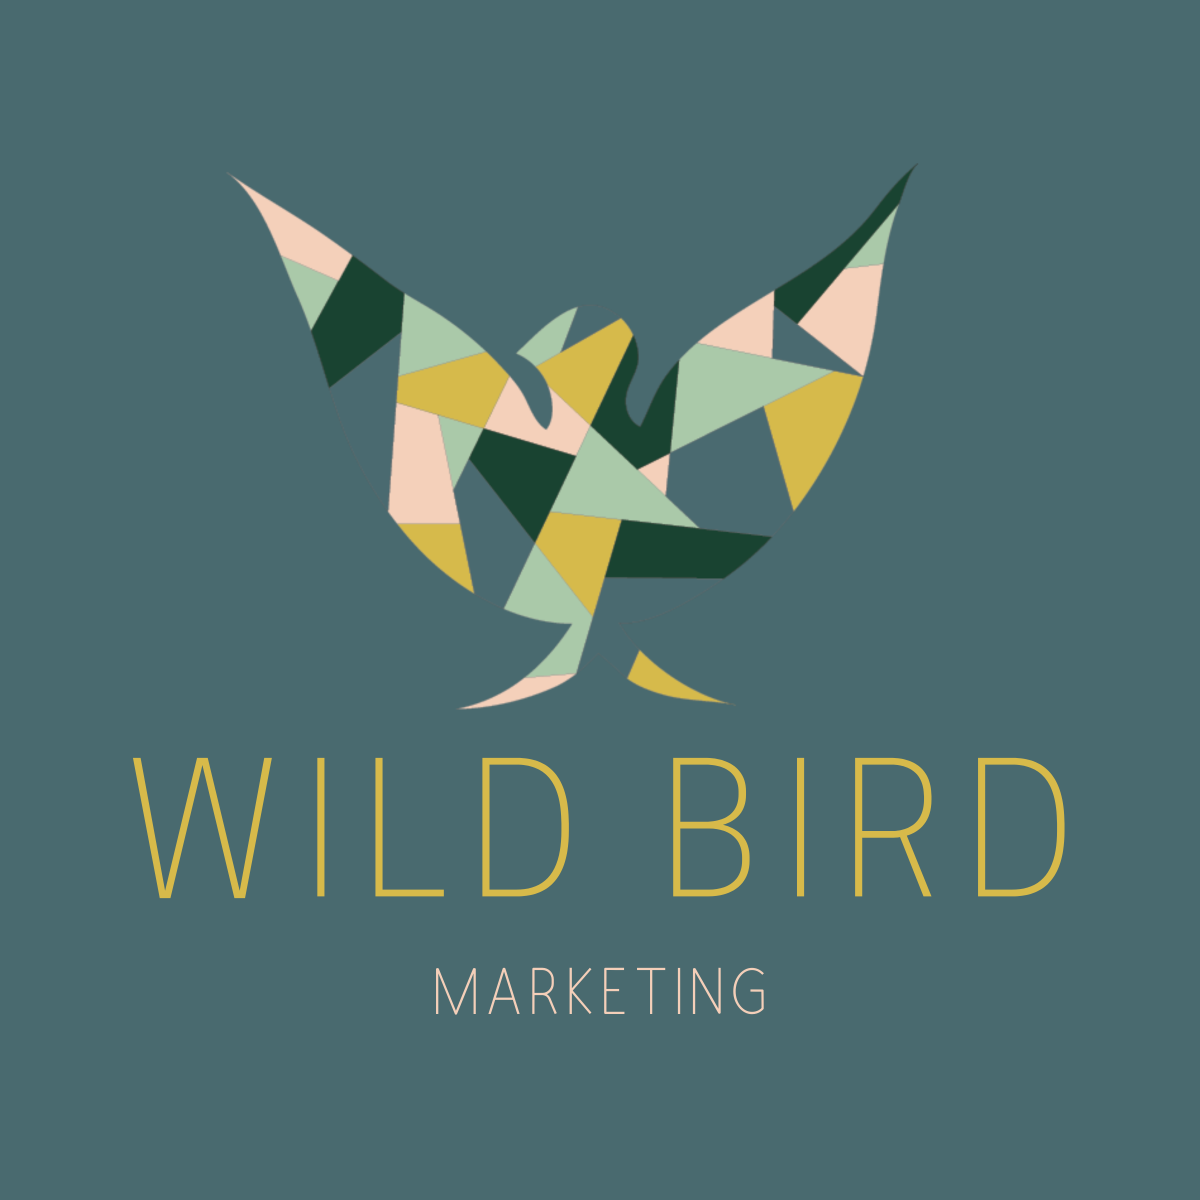 Wild Bird Marketing